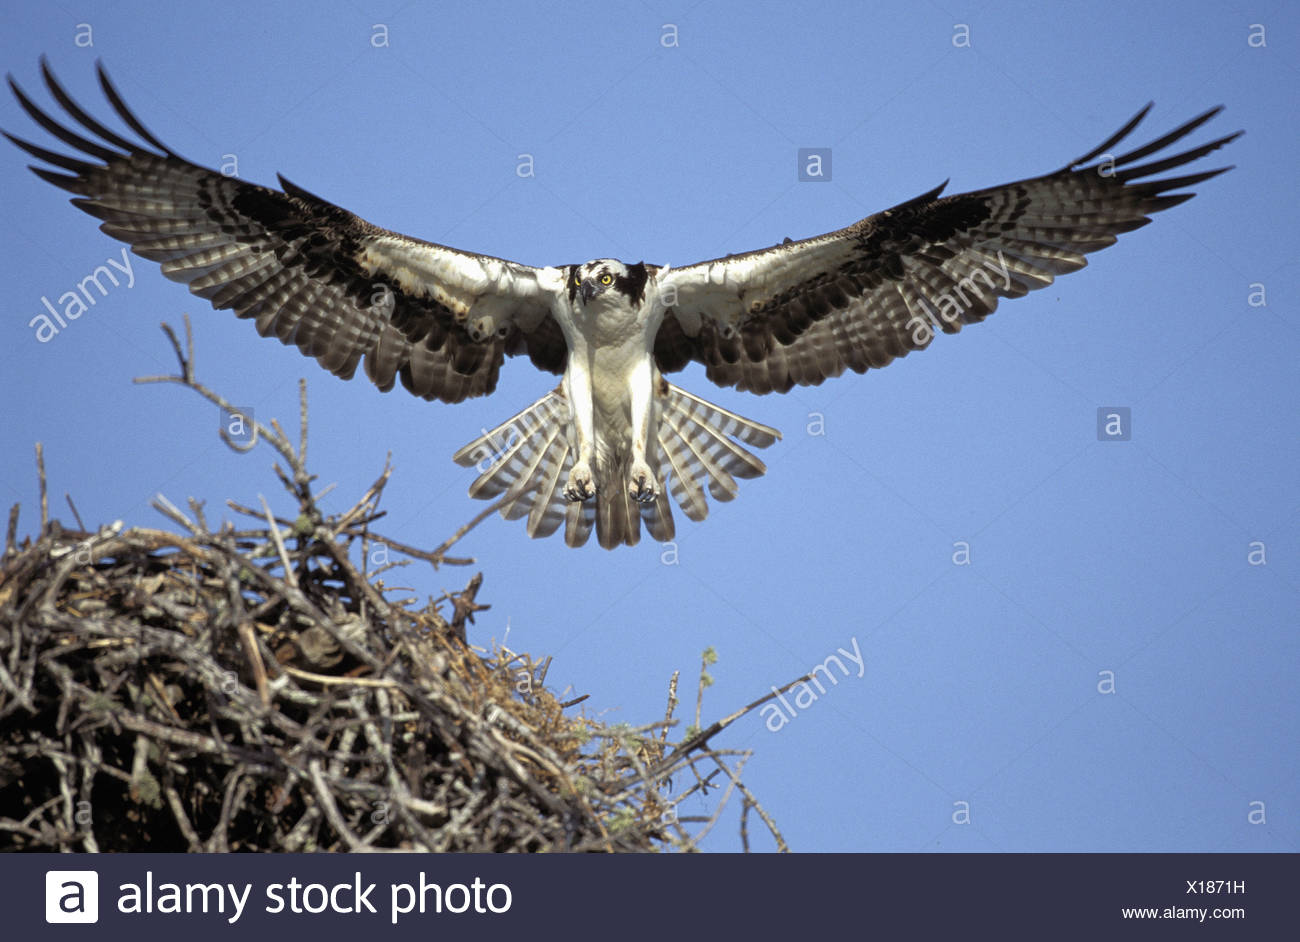 zoology / animals, avian / bird, Pandionidae, Osprey (Pandion haliaetus), flying towards nest, Sanibel Island, Florida, USA, distribution: worldwide without South America, Additional-Rights-Clearance-Info-Not-Available - Stock Image